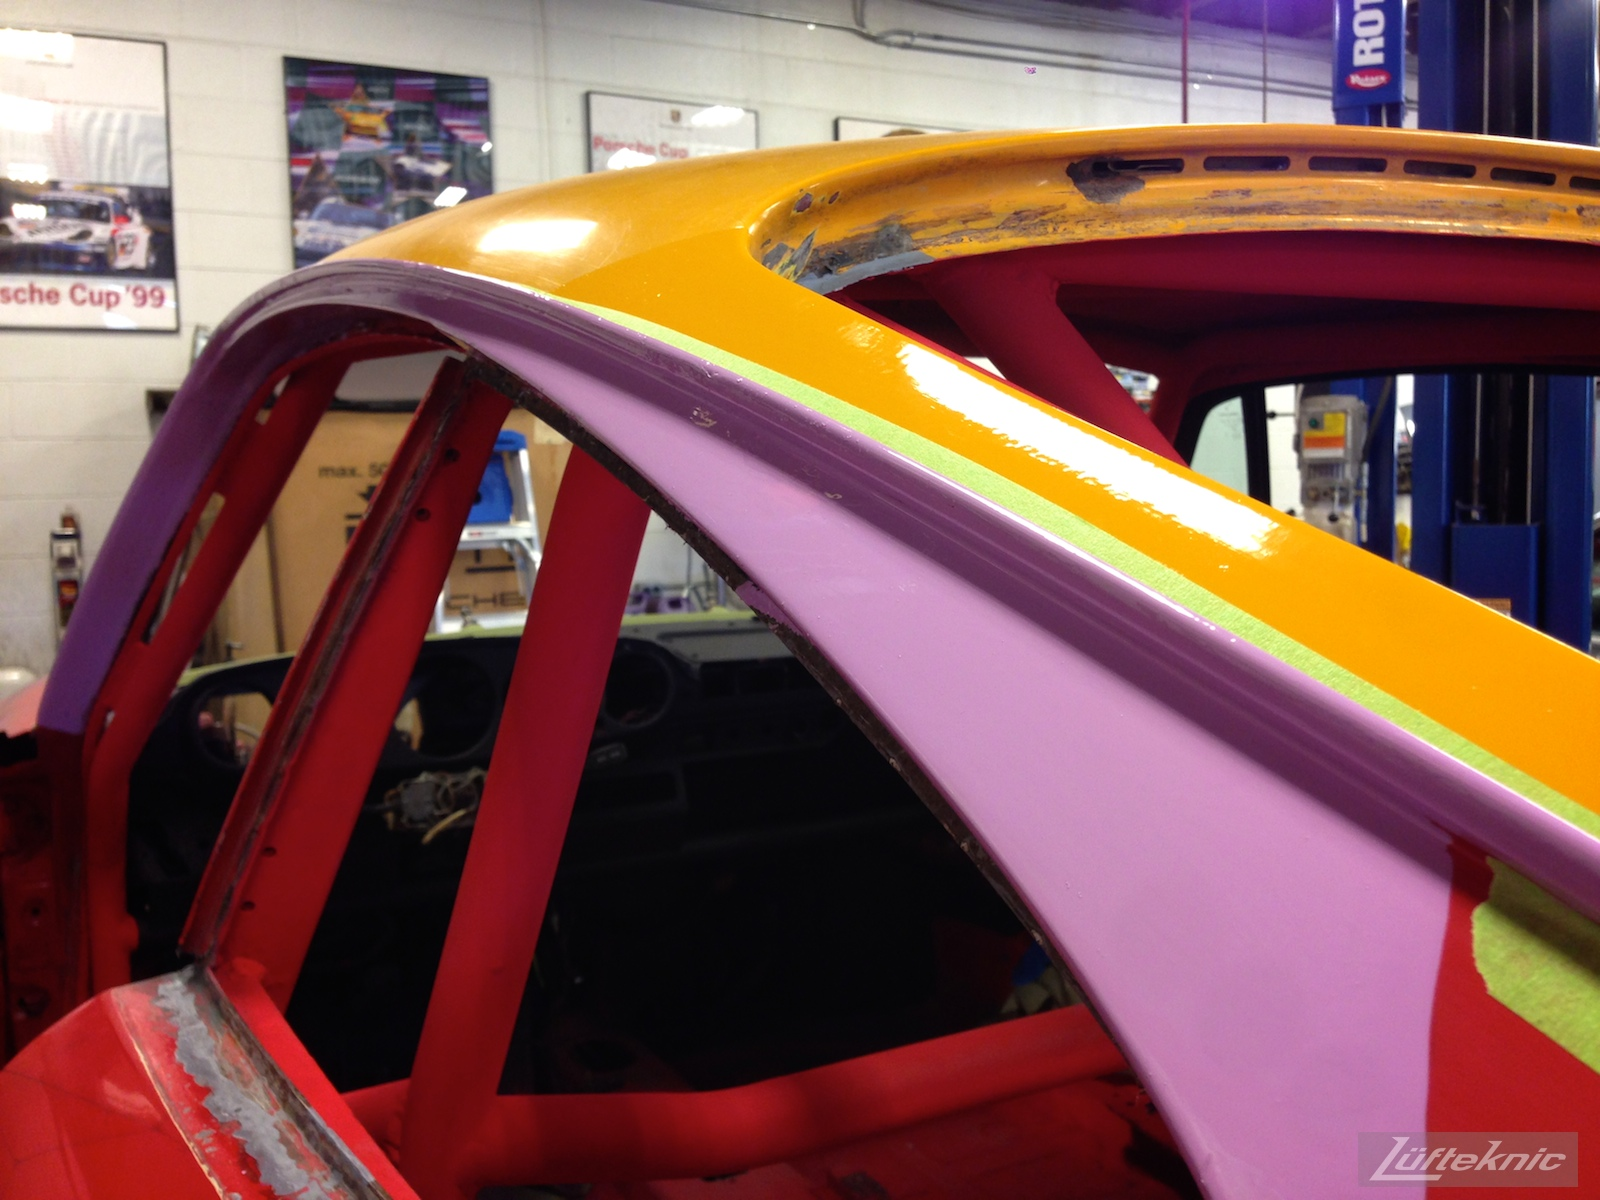 Lüfteknic #projectstuka Porsche 930 Turbo rain gutter painted violet.